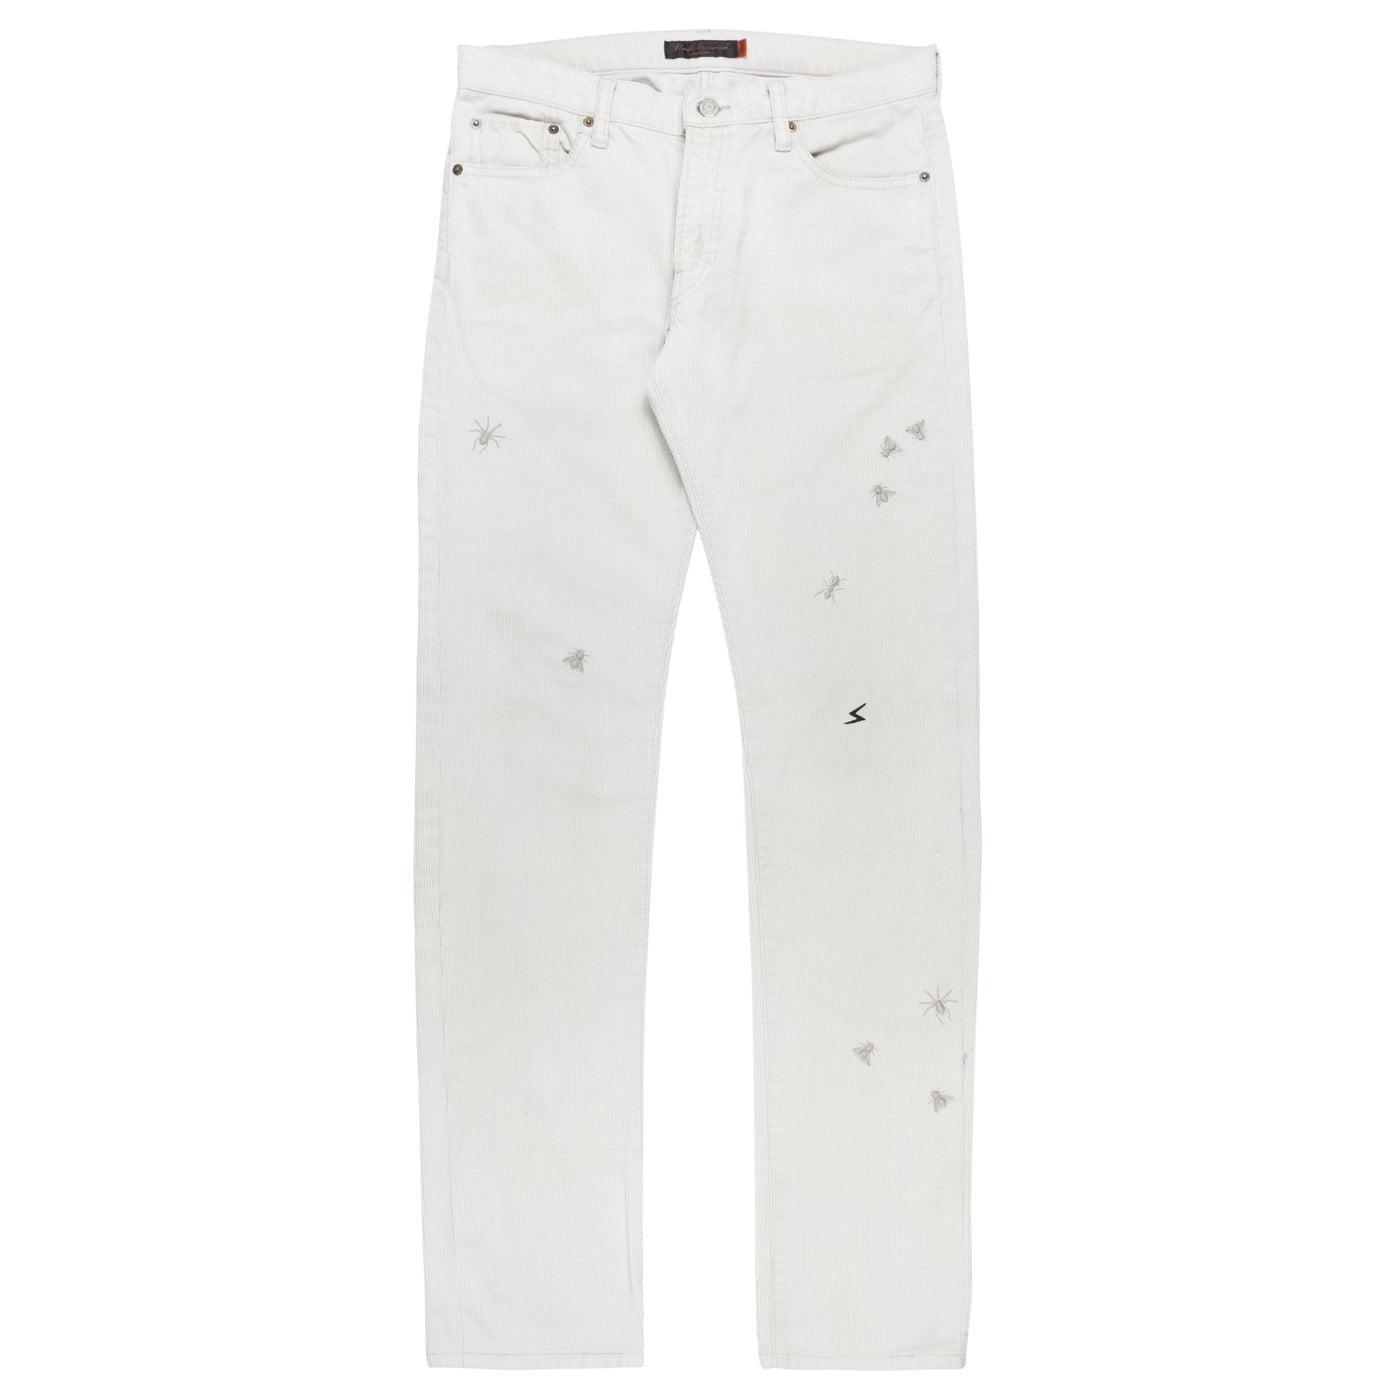 Undercover Insect Corduroy Jeans - AW06